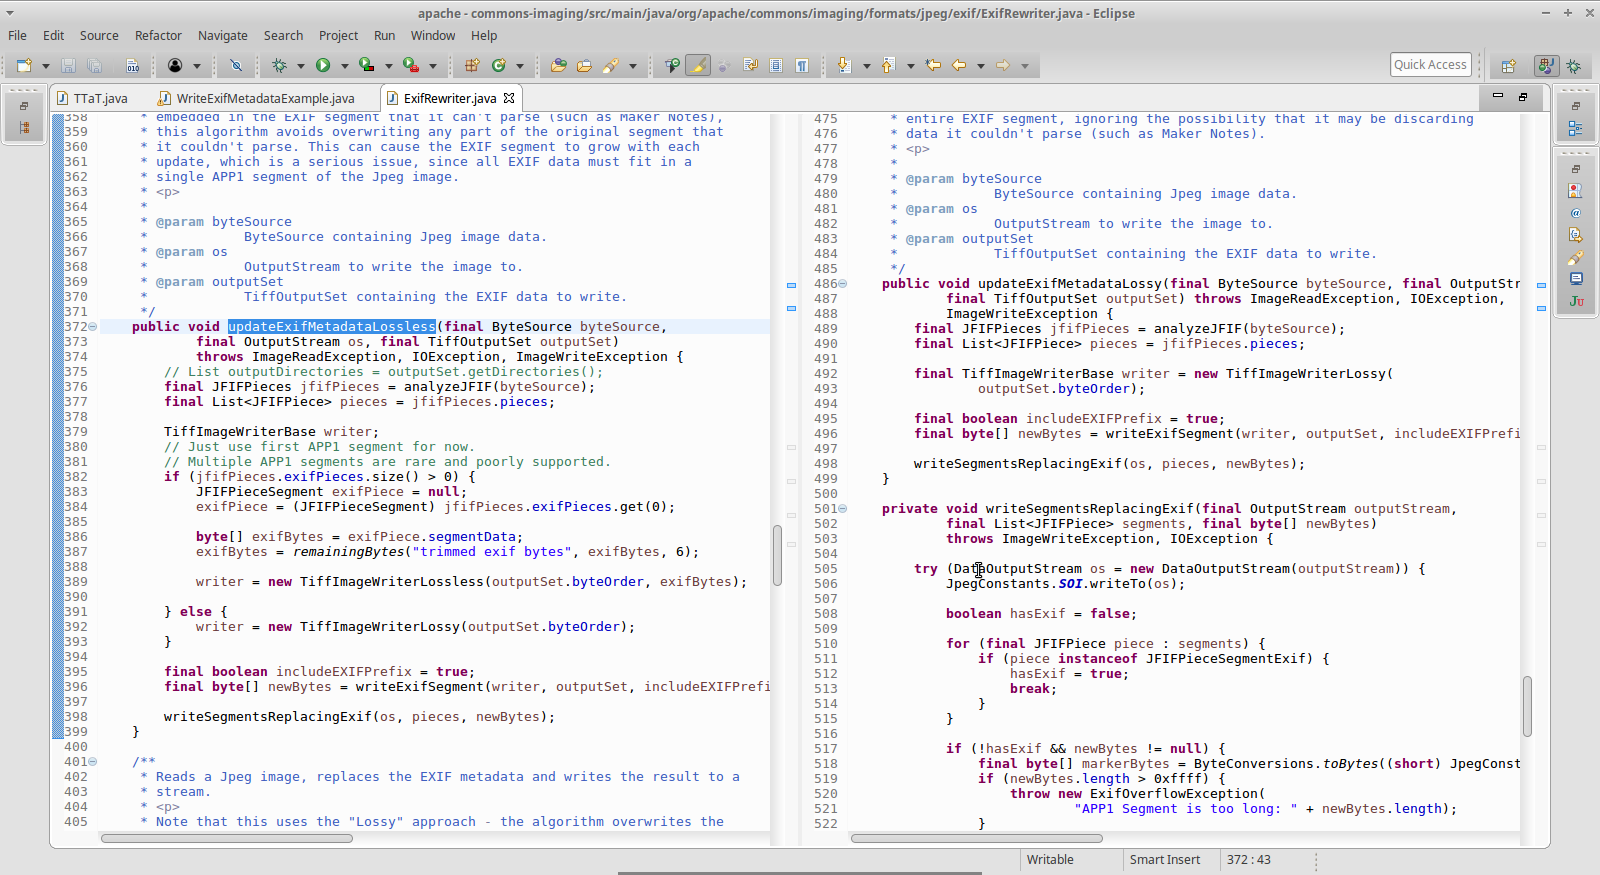 A screen shot of Eclipse with source code